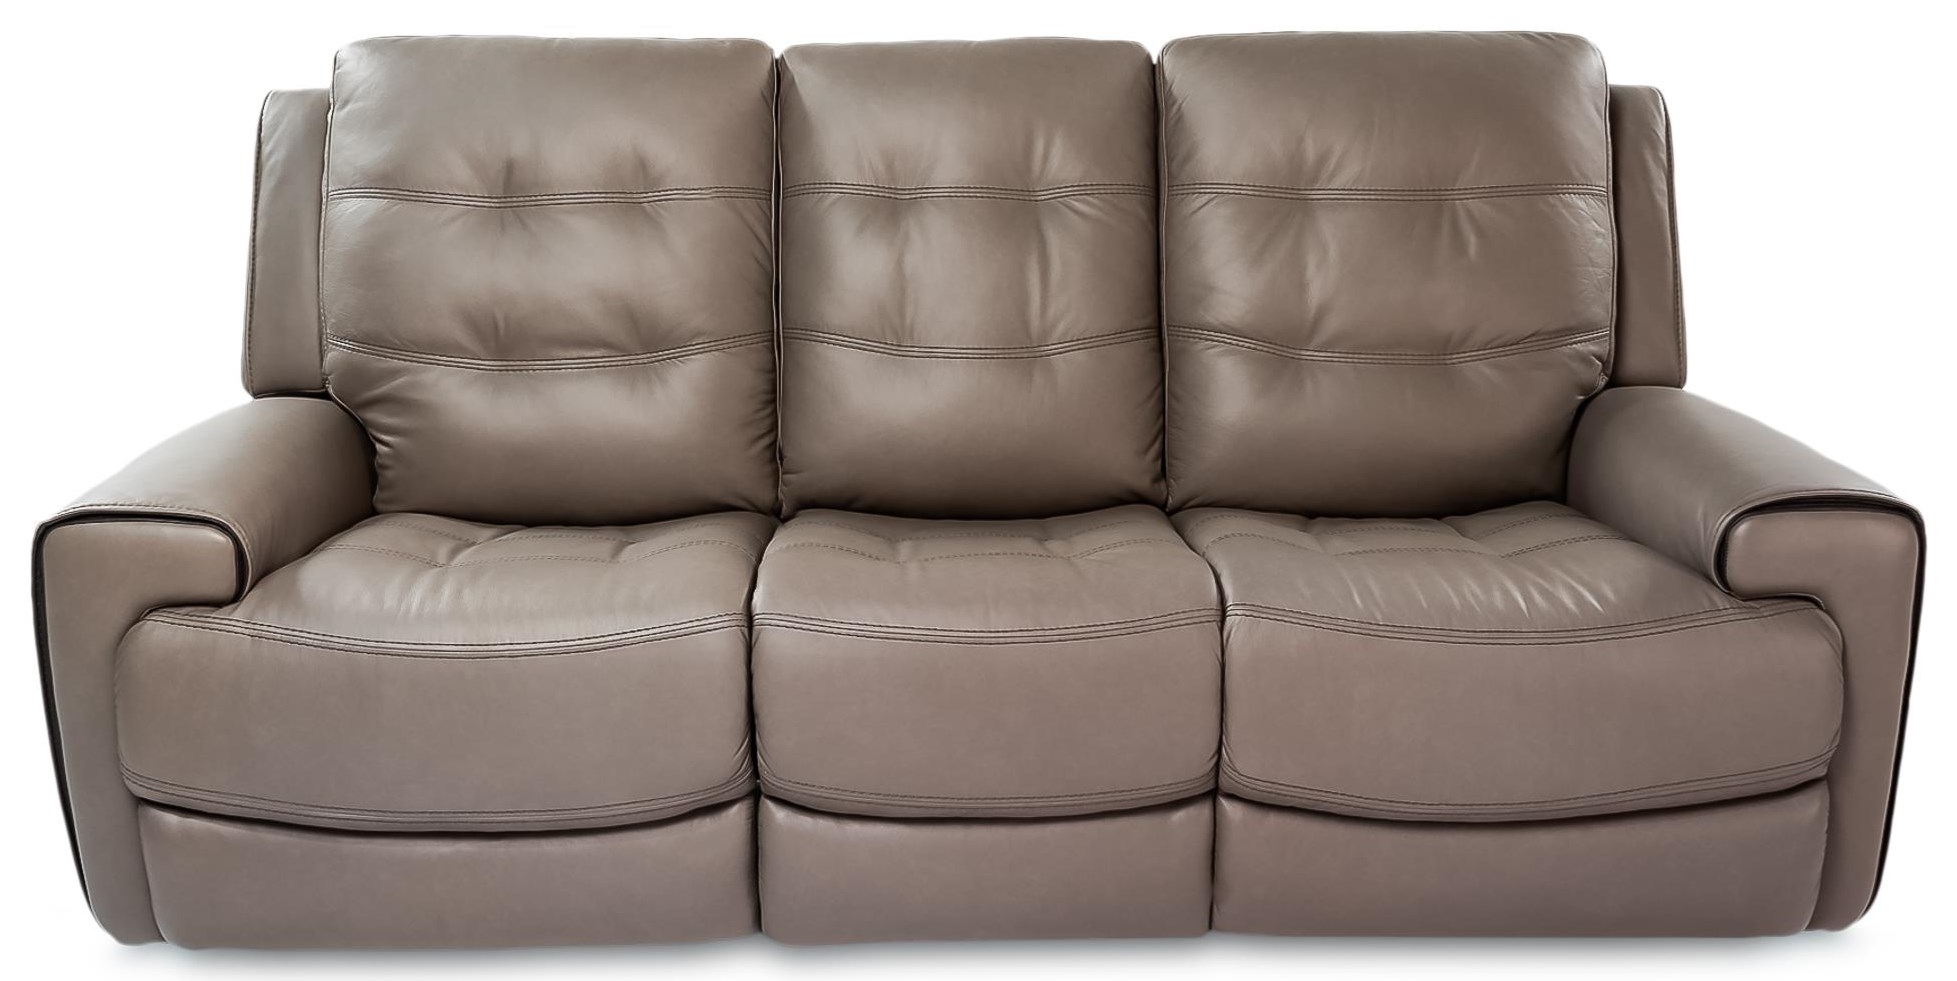 Lowick Power Reclining Sofa with Power Headrest by Flexsteel at Rotmans